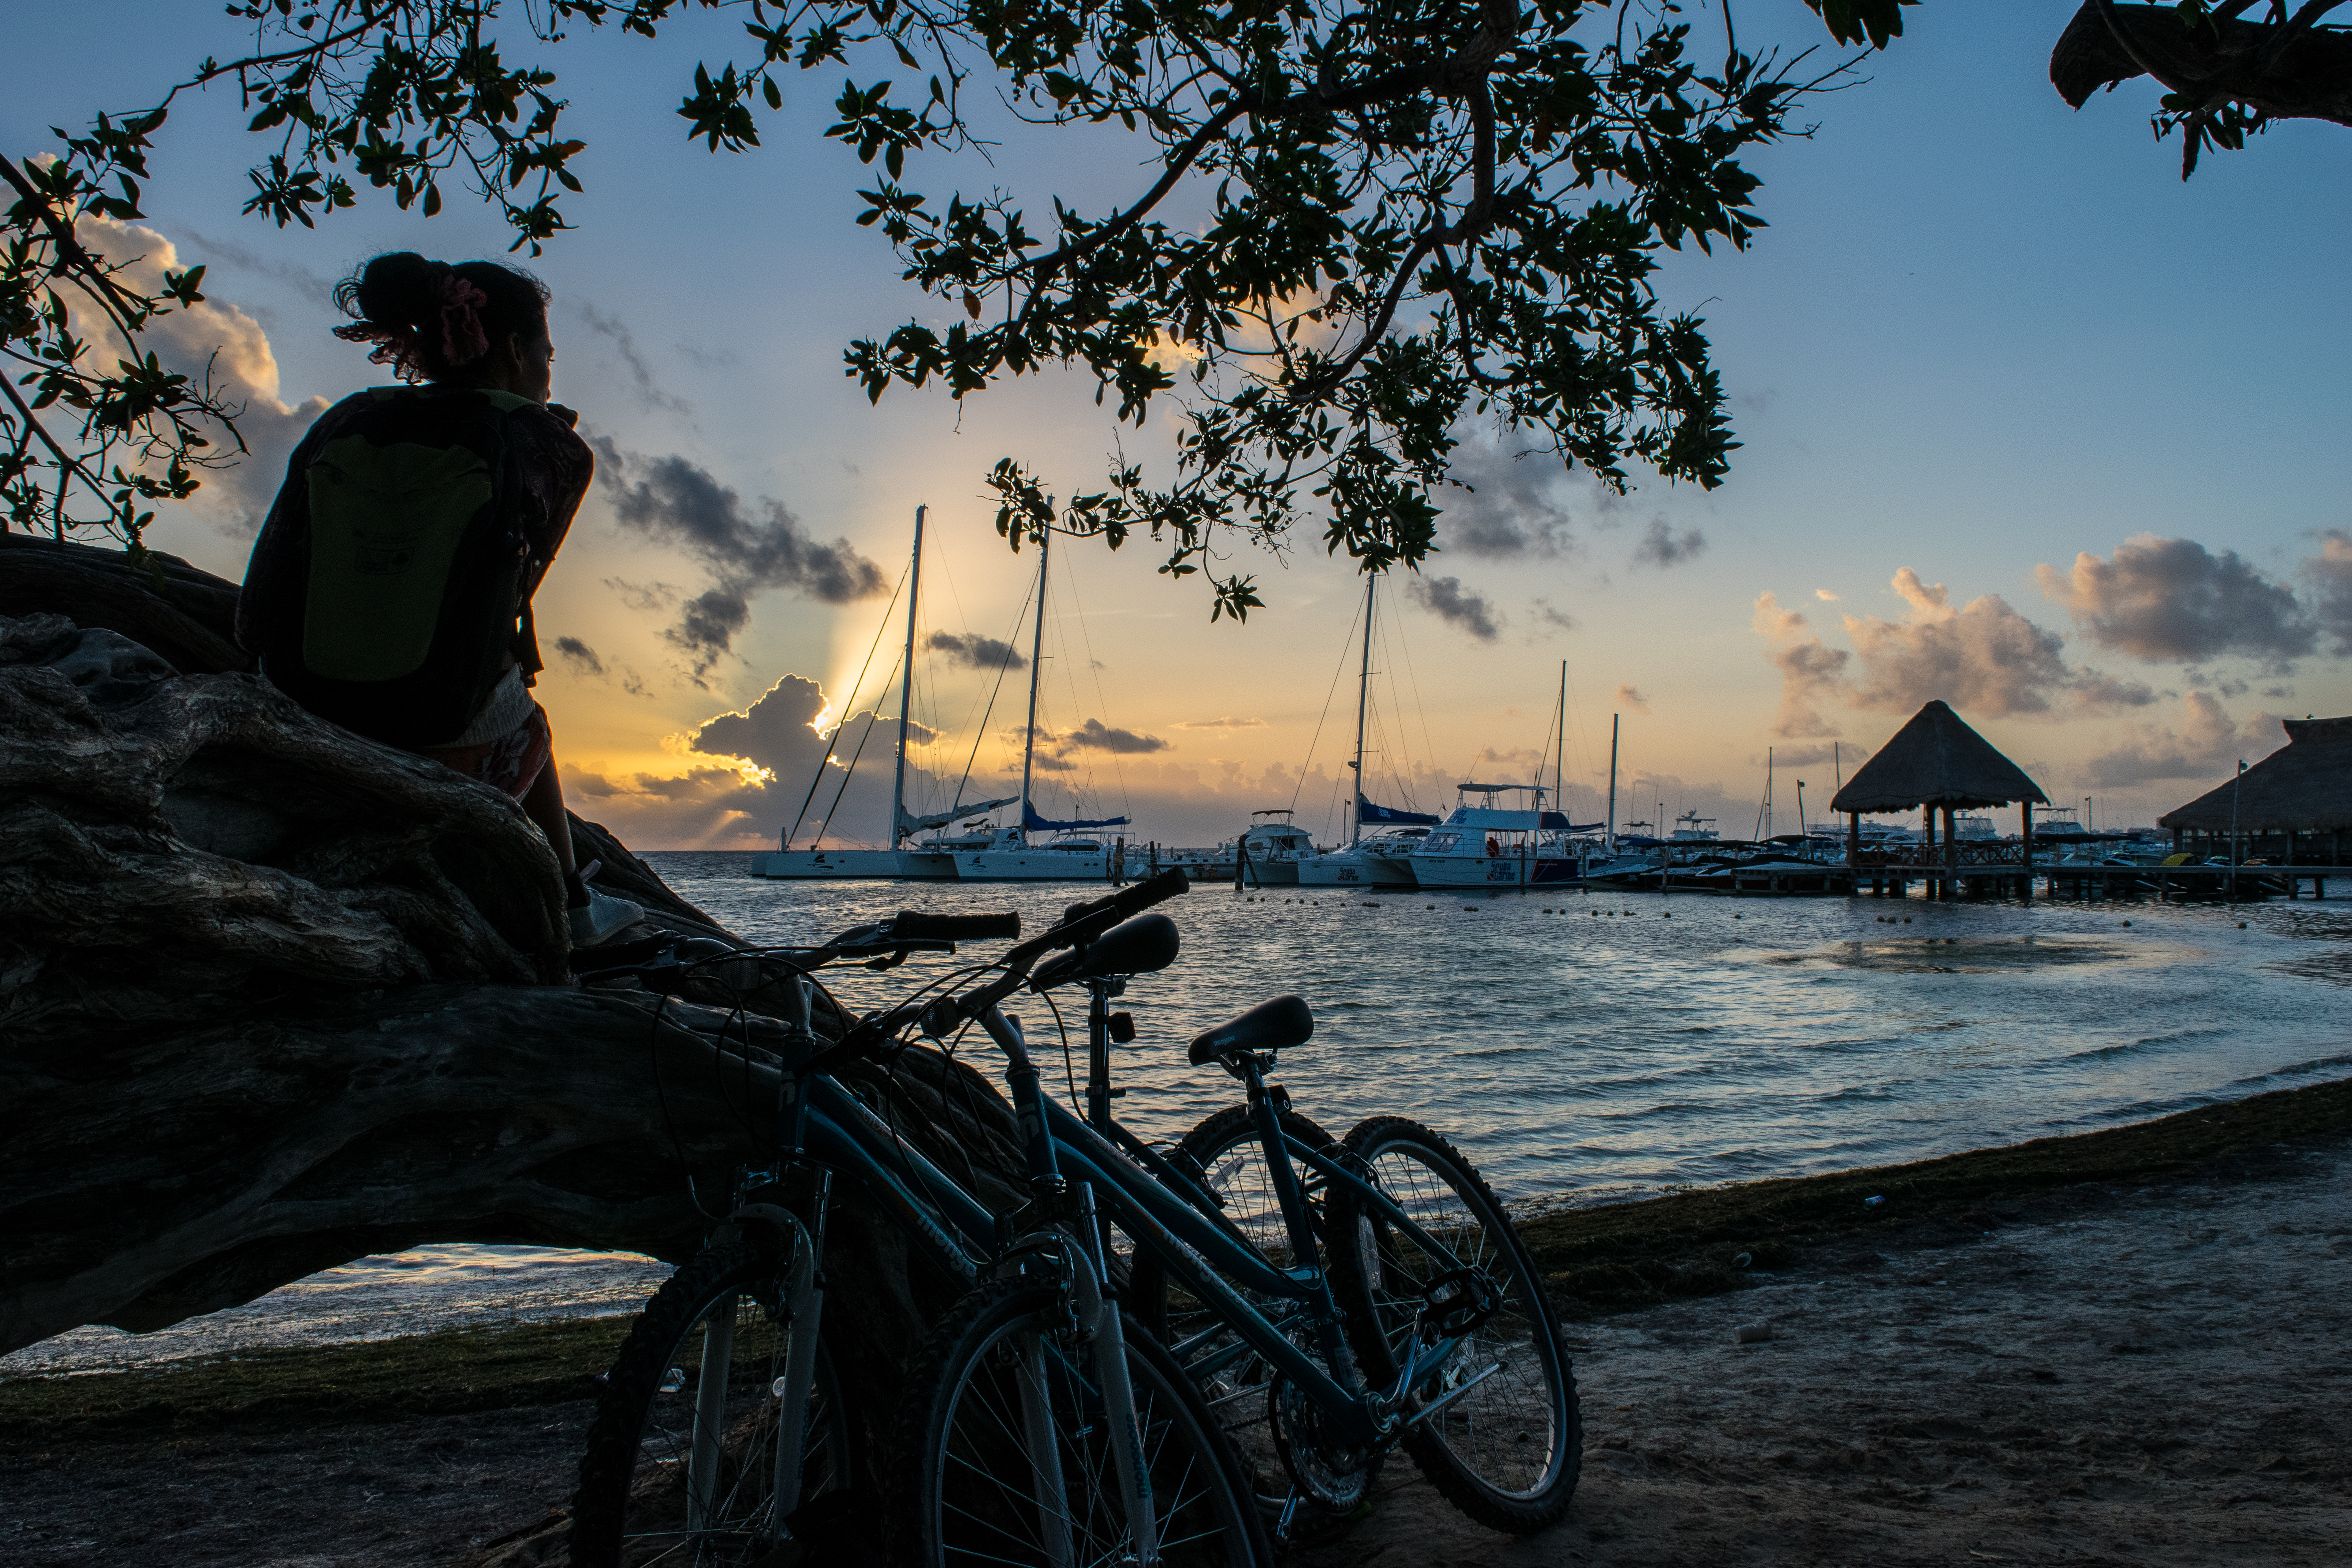 sunrise + bikes at Playa las Perlas